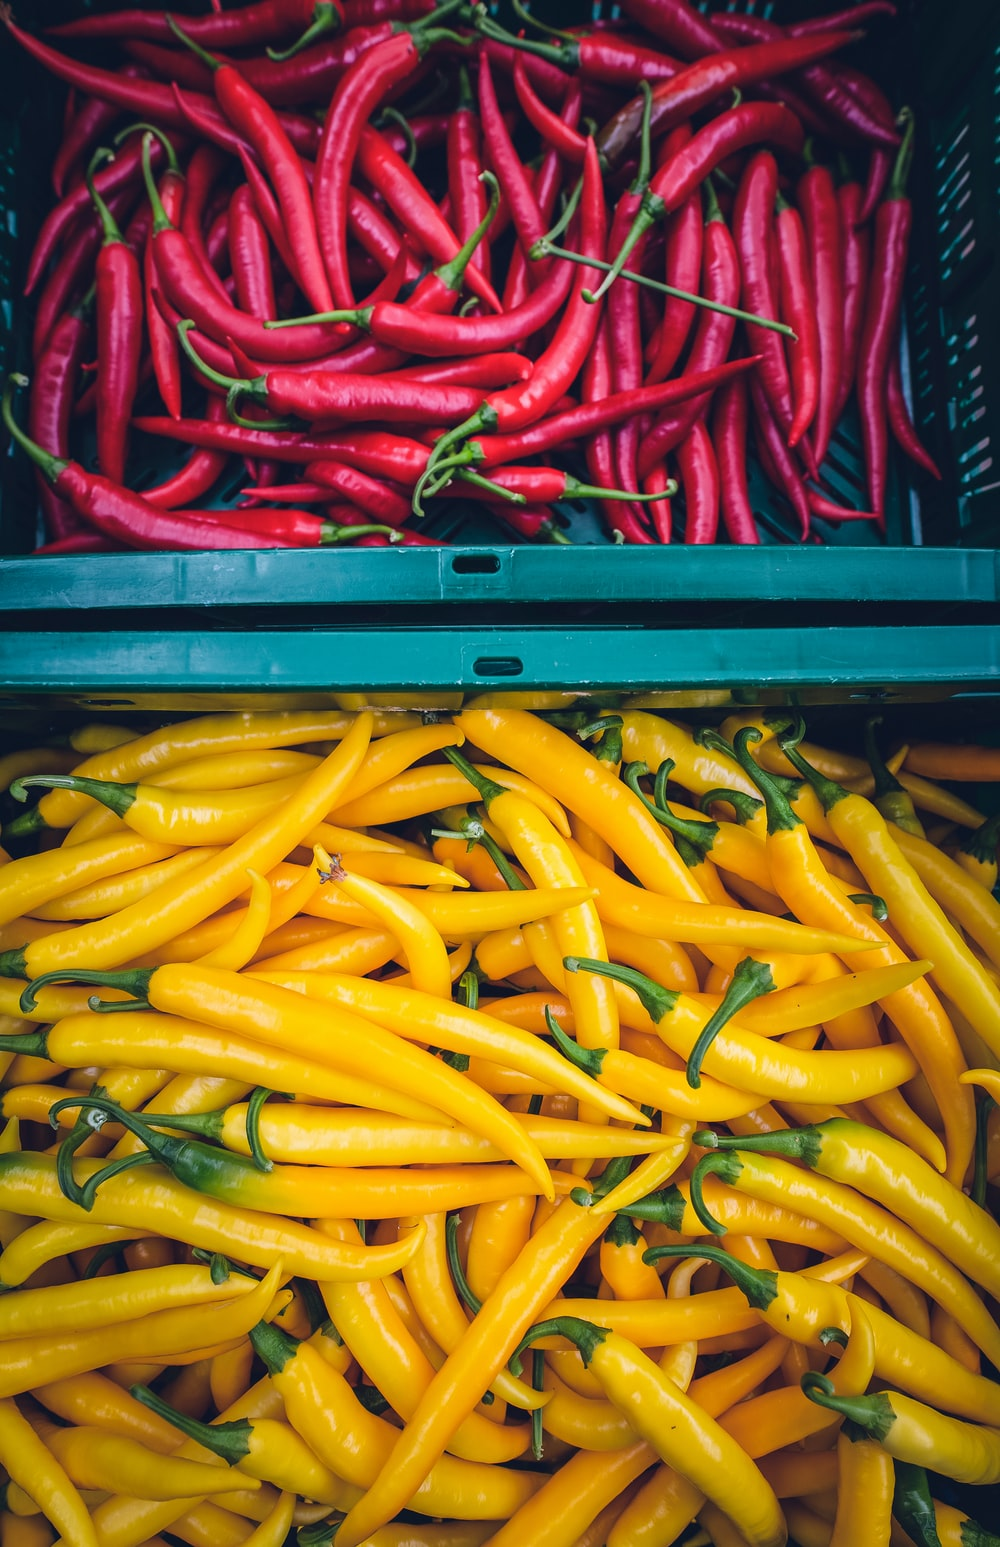 yellow and red chilis on plastic crate